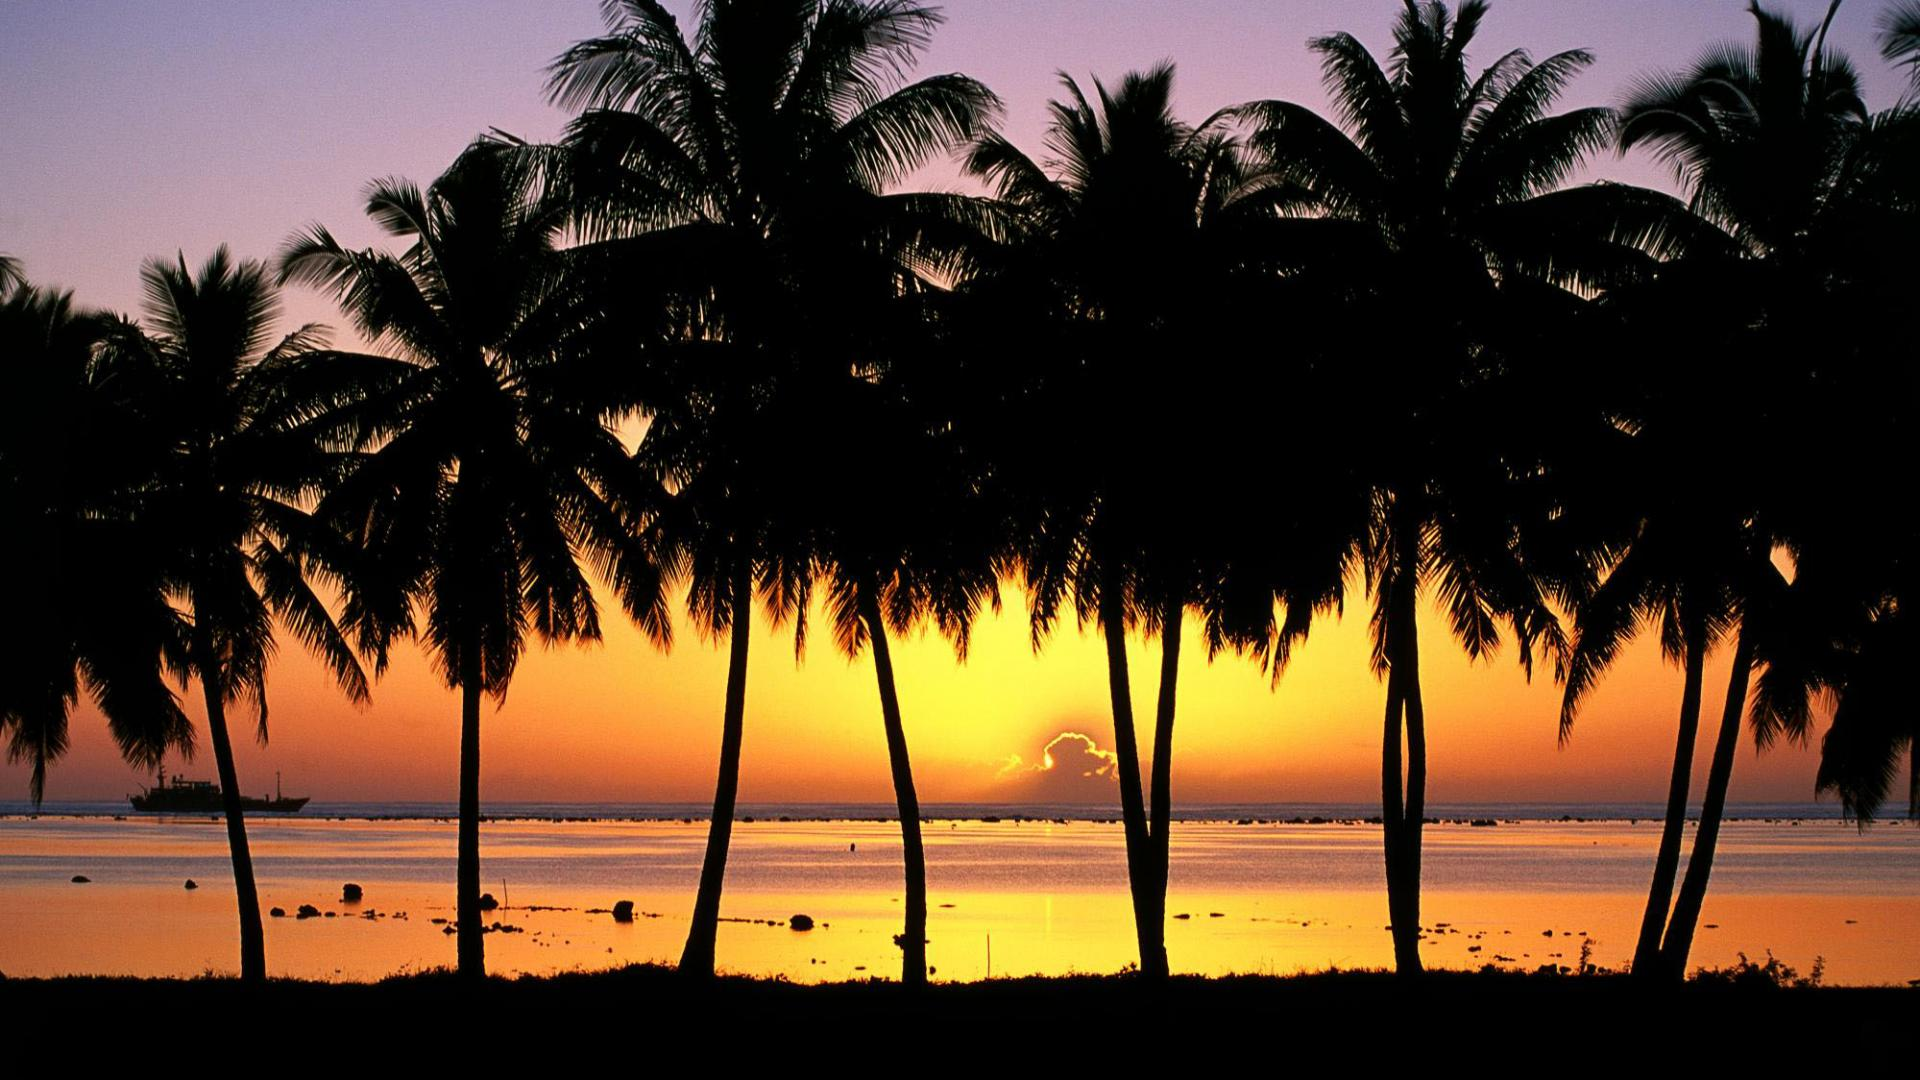 Desktop wallpapers Palm Trees at Sunset Cook Islands 1920x1080